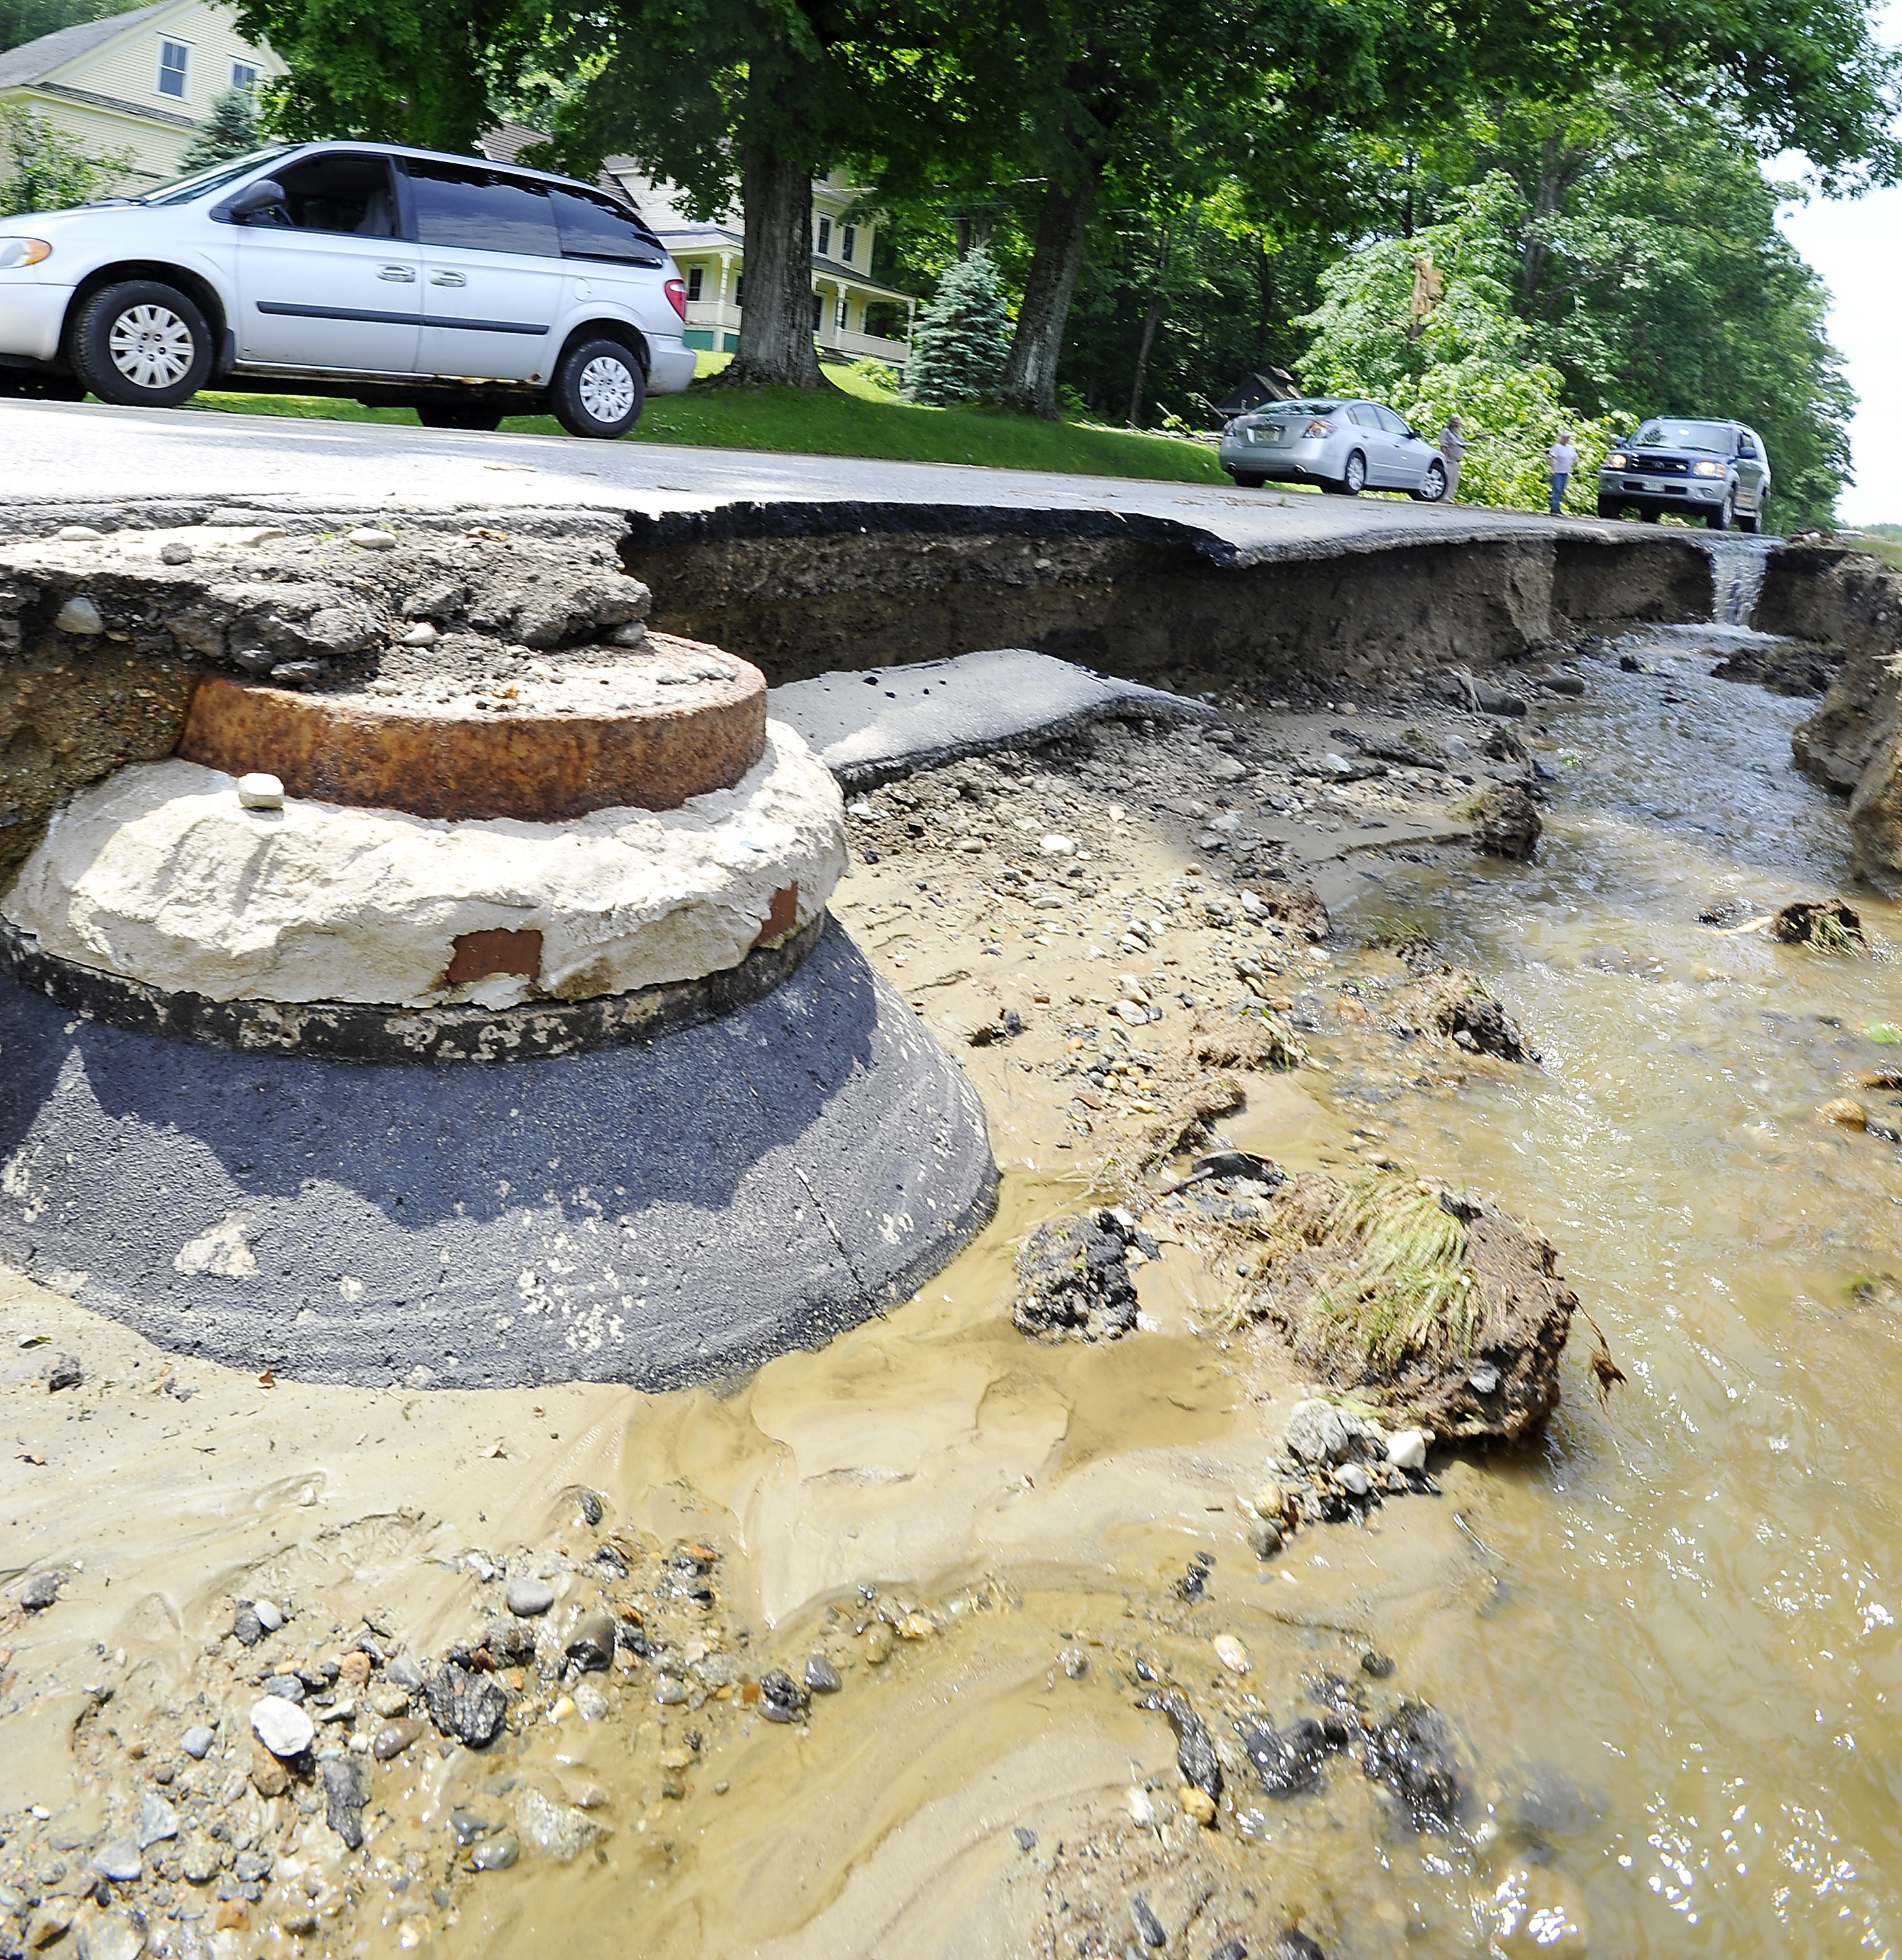 Wyman Hill Road was washed out by Wednesday's storms. Cars could pass only on one side Thursday.